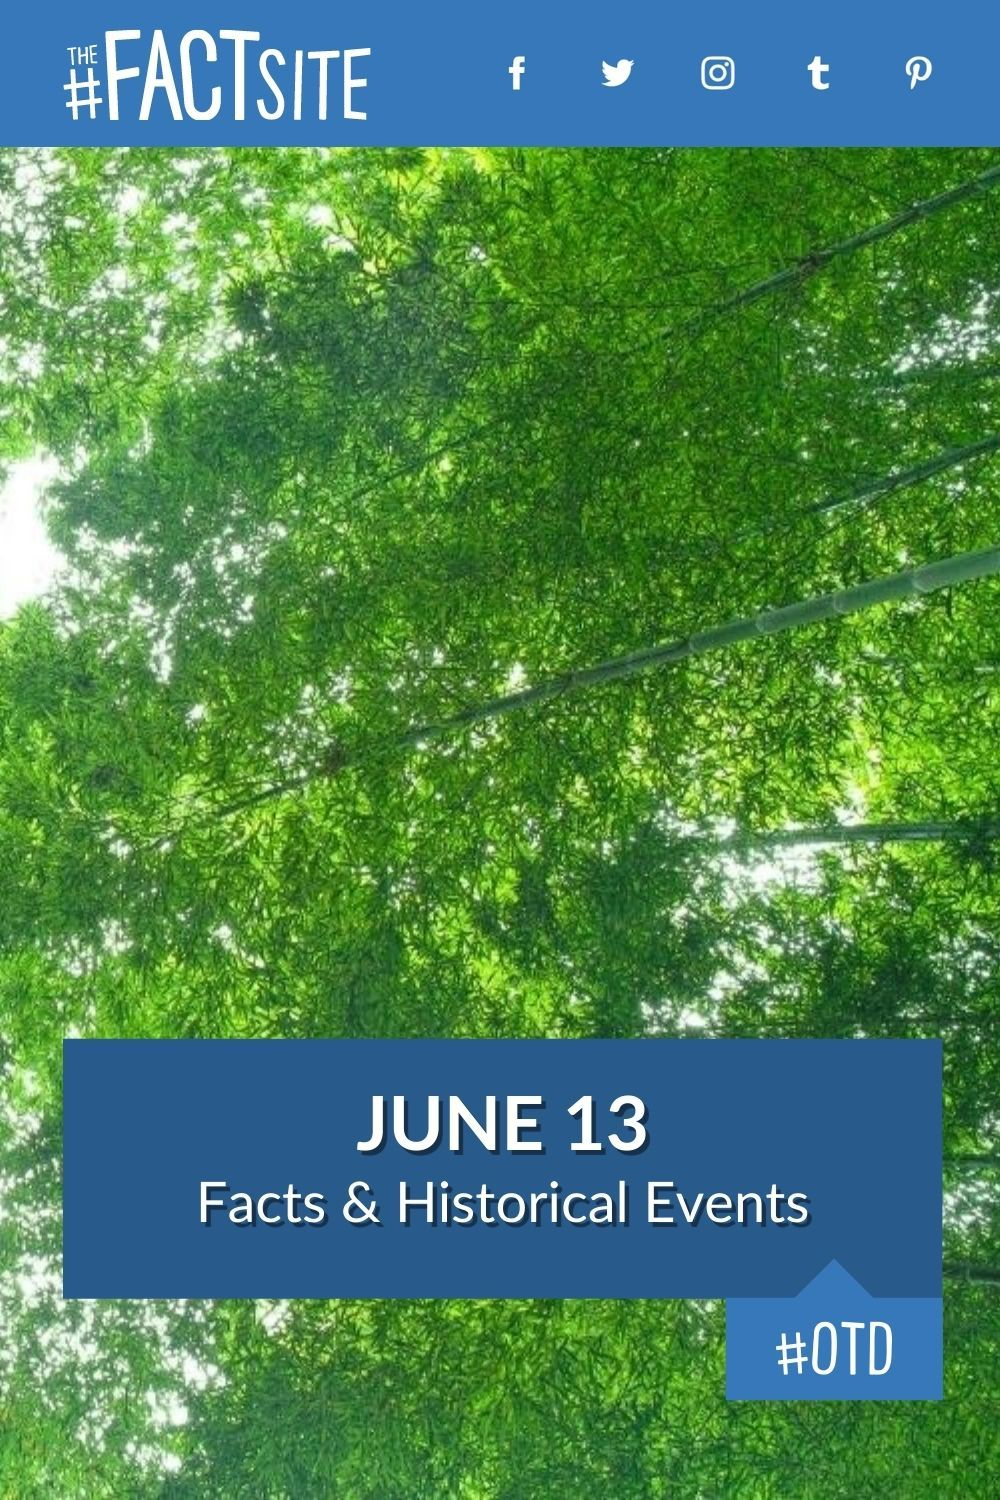 Facts & Historic Events That Happened on June 13